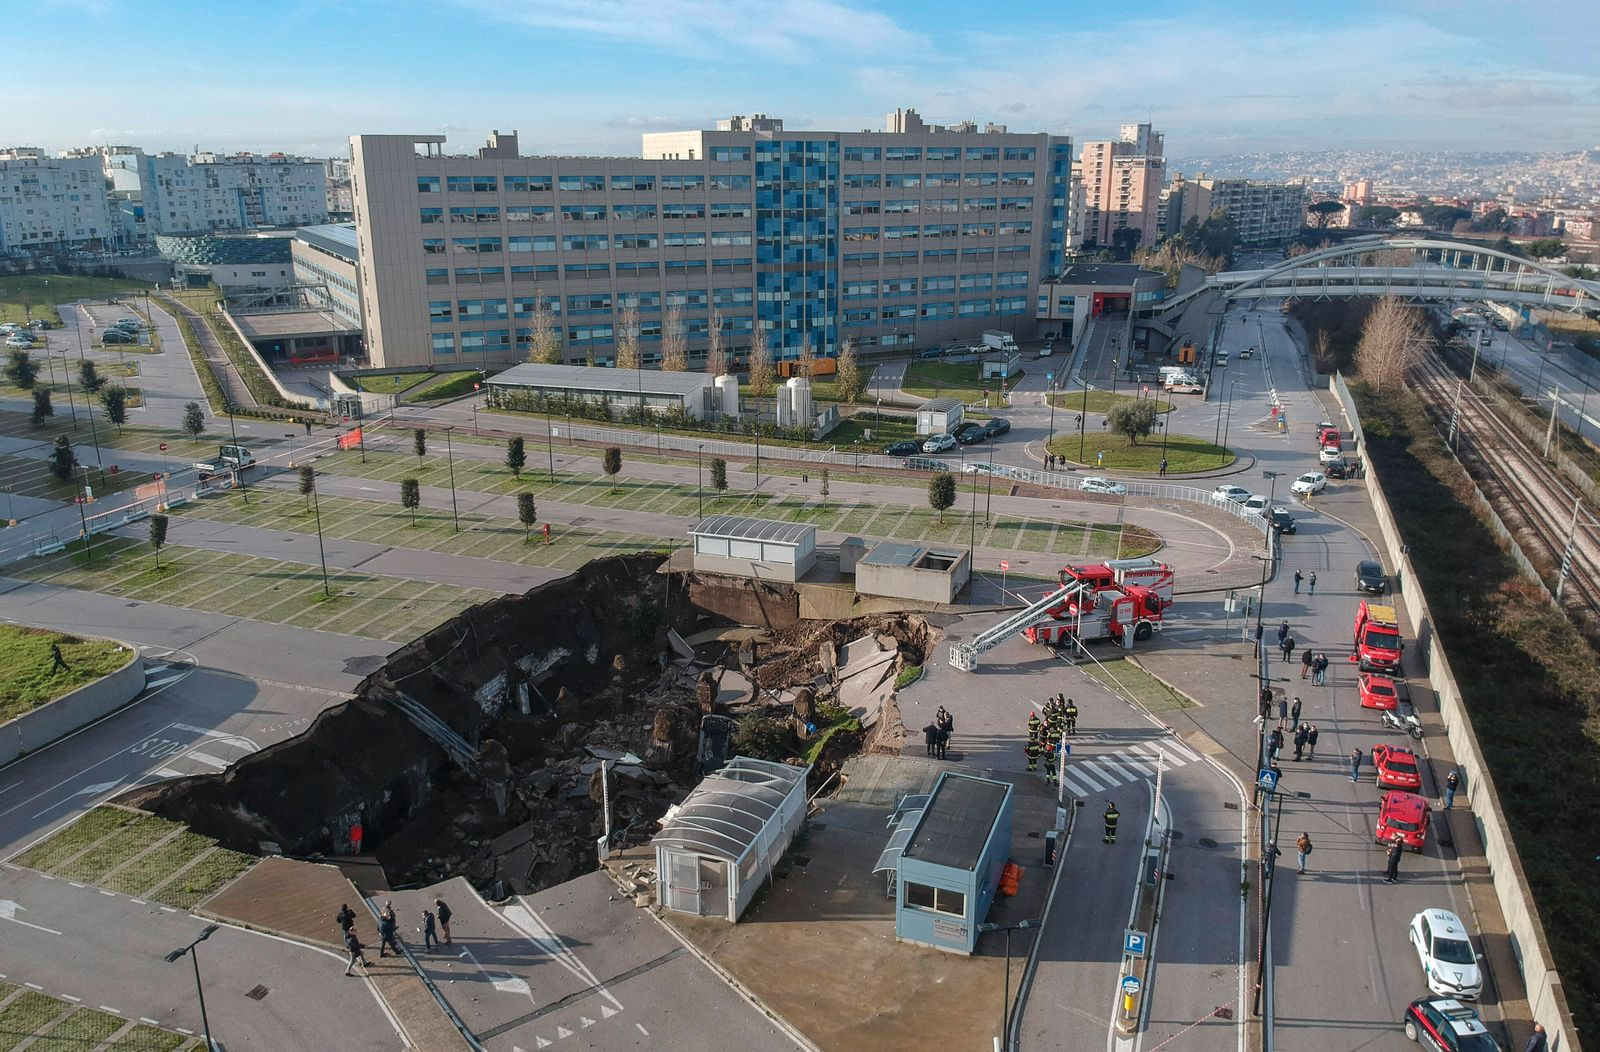 Naples, a huge chasm this morning in the parking area of the Sea Hospital in Ponticelli, the Covid residence is evacuat